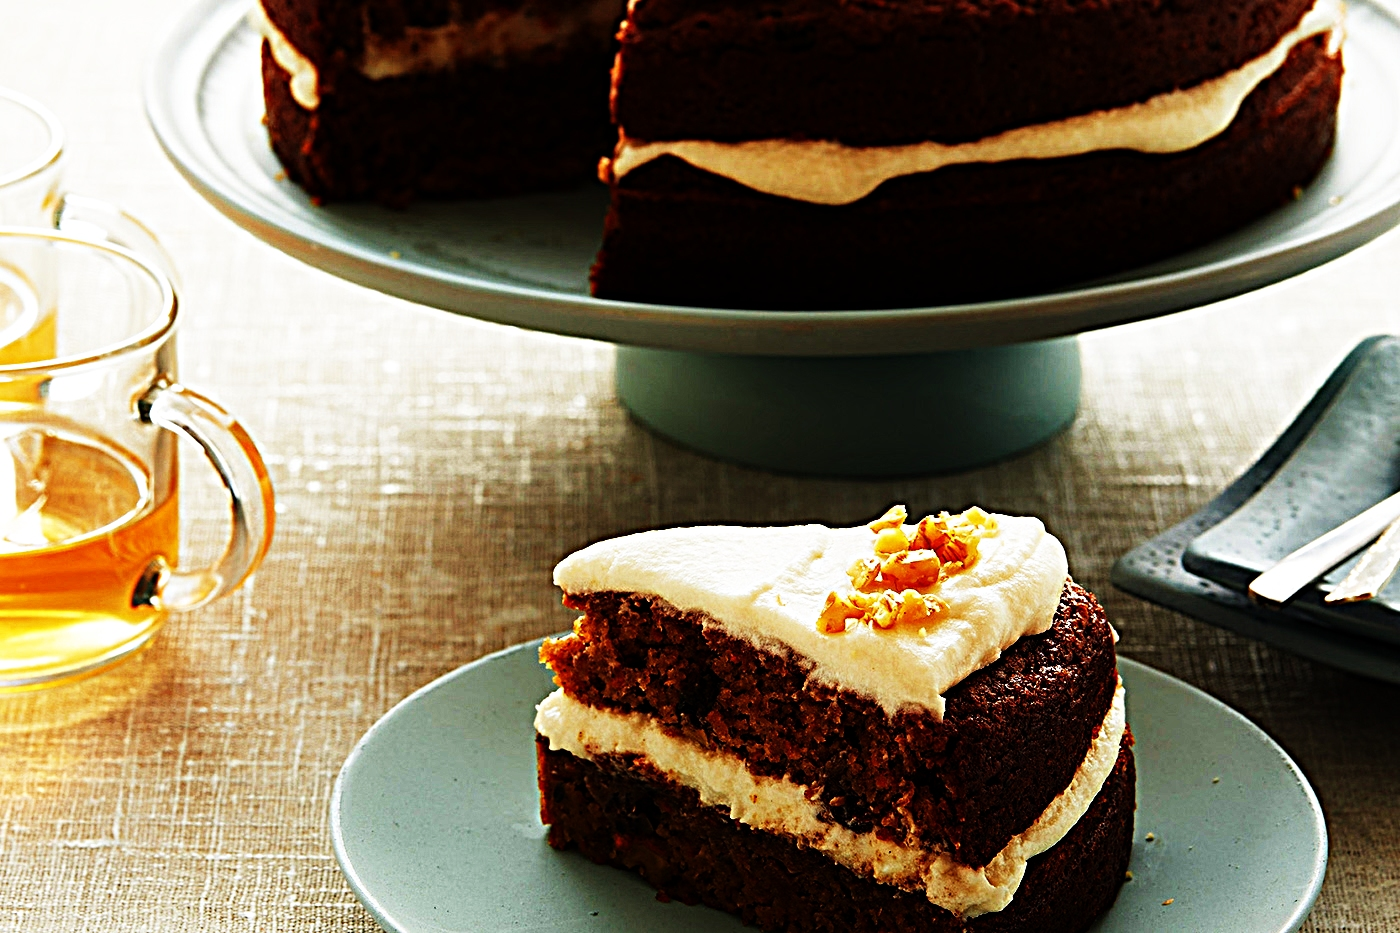 Stupid-Easy Recipe for Vegan Carrot Cake (#1 Top-Rated)